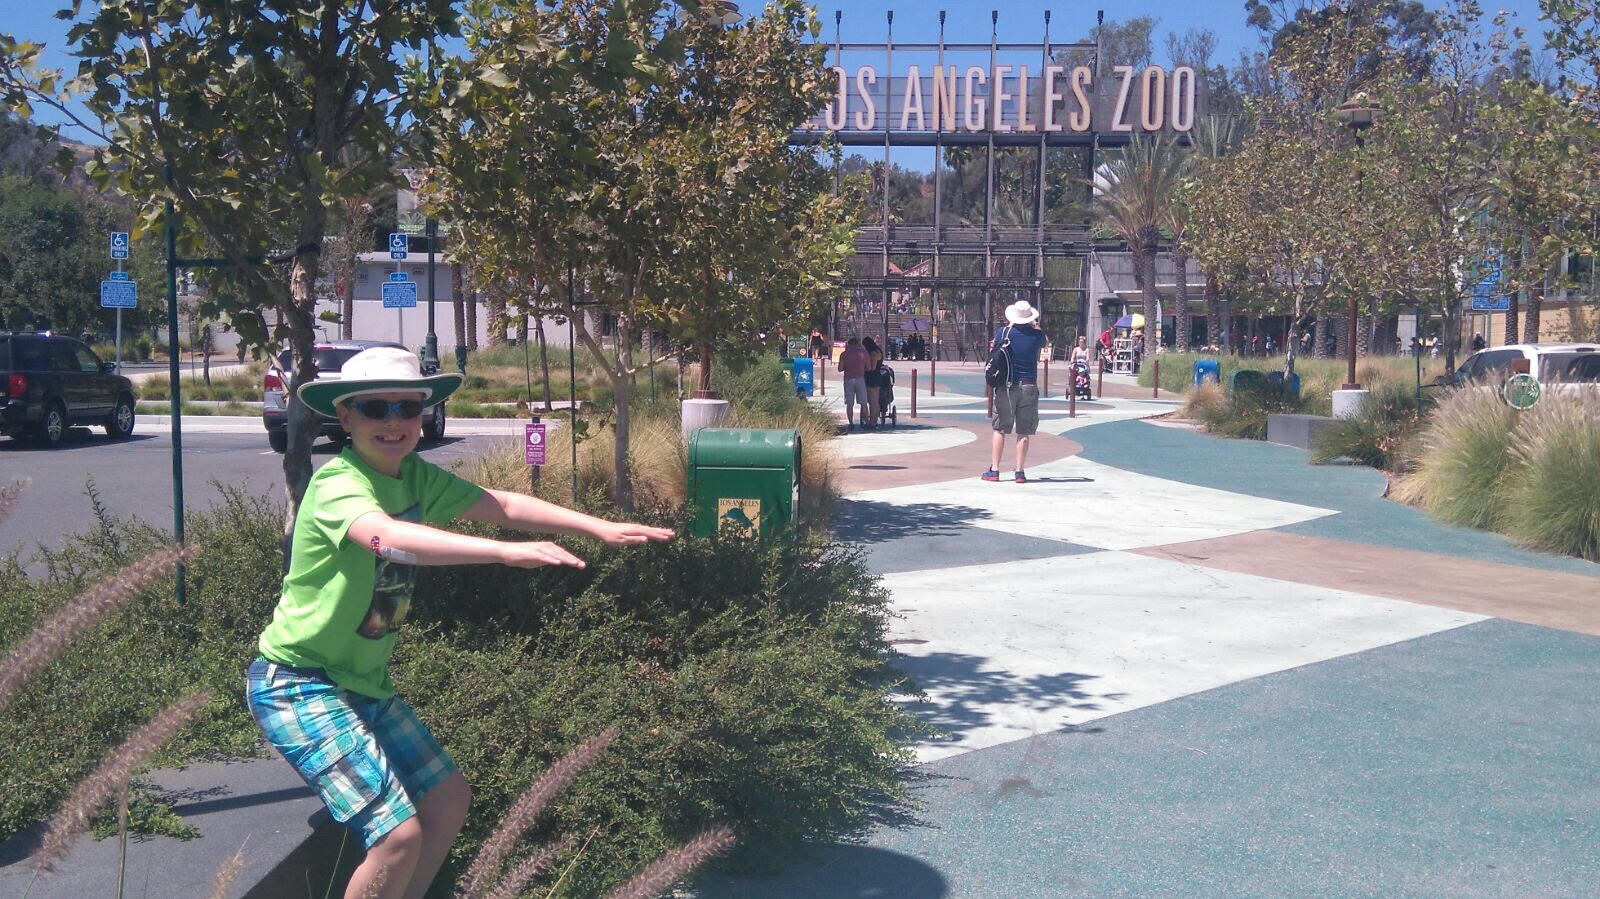 One of our youngest clients practicing his moves at Disneyland!